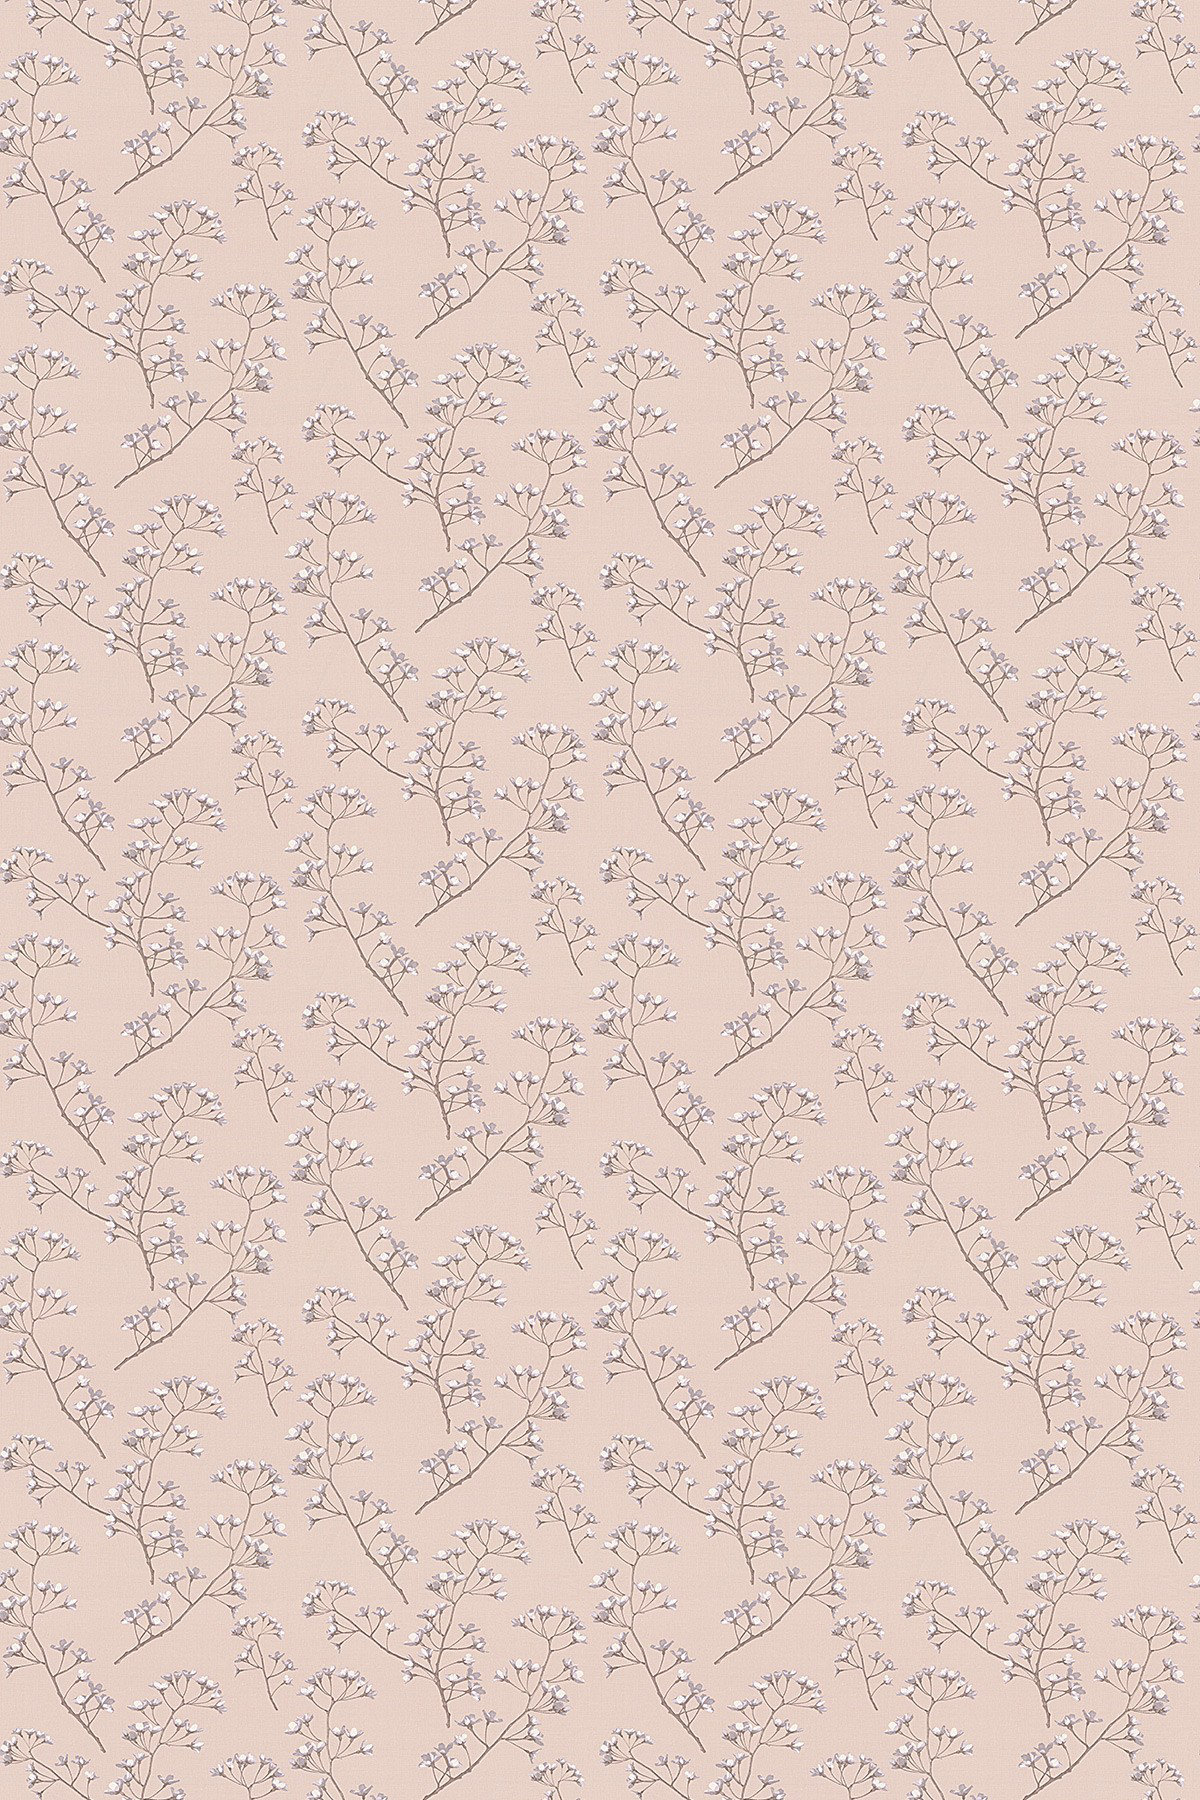 Image of Jocelyn Warner Fabric Blossom, JWF-1305